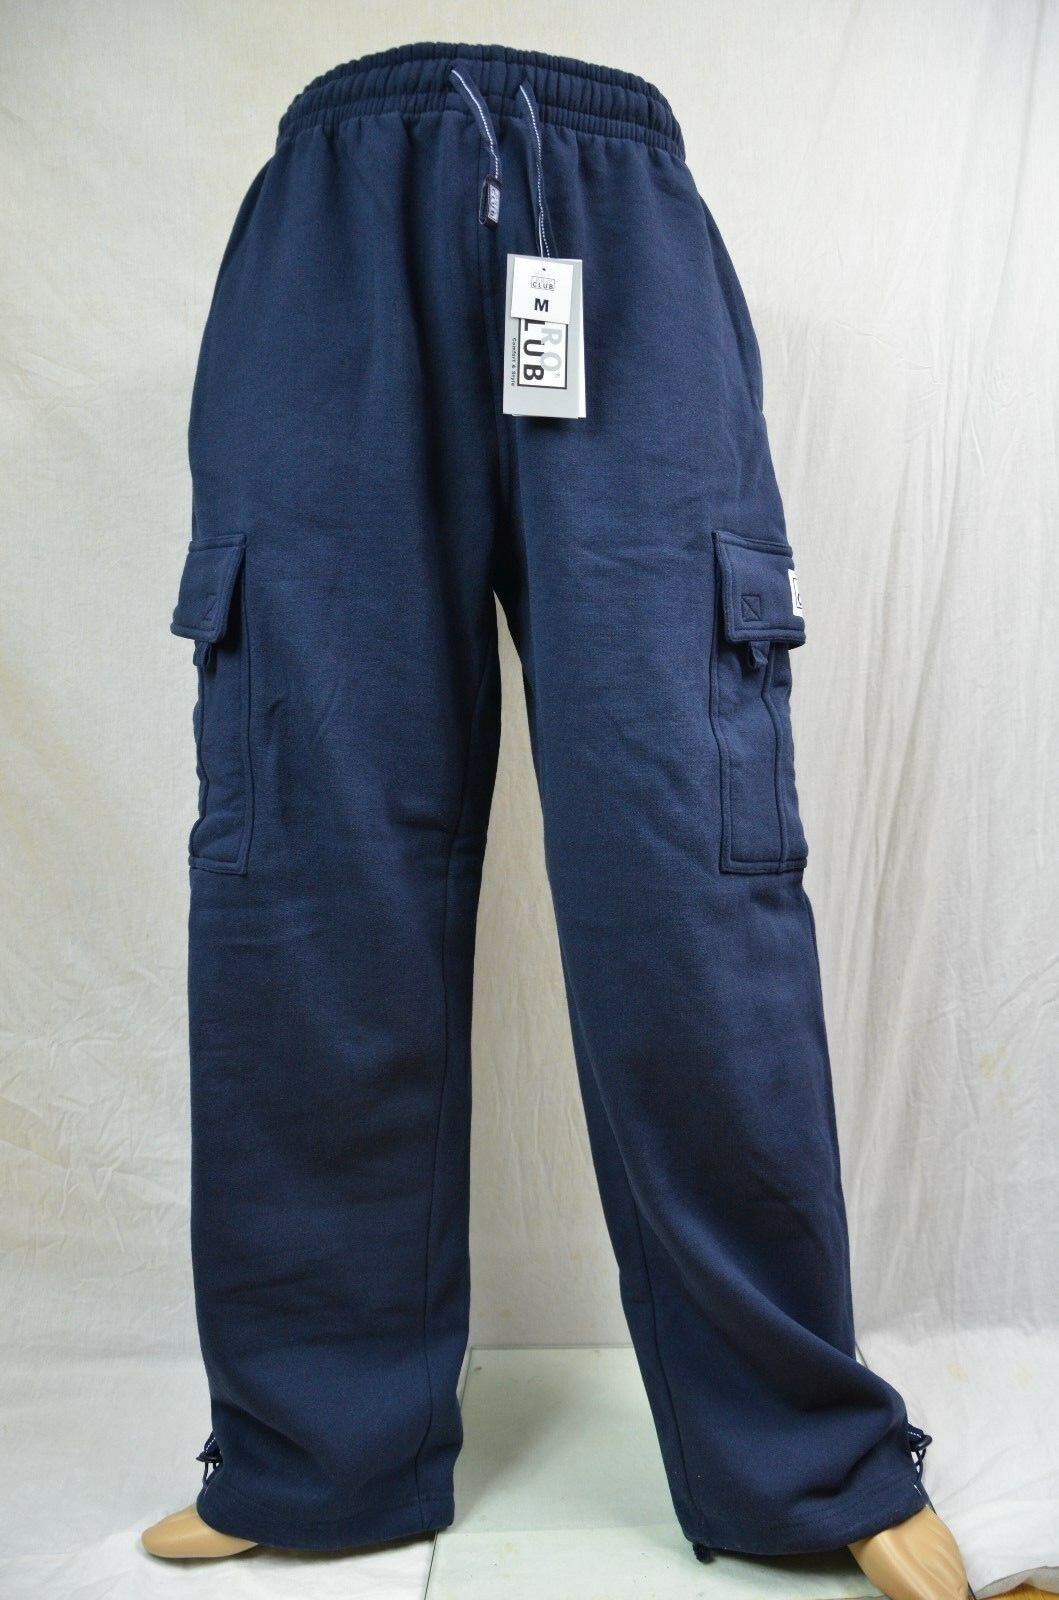 Pro Club Fleece Cargo Sweatpants Navy bluee Heavy Weight Jogging Mens S-7XL